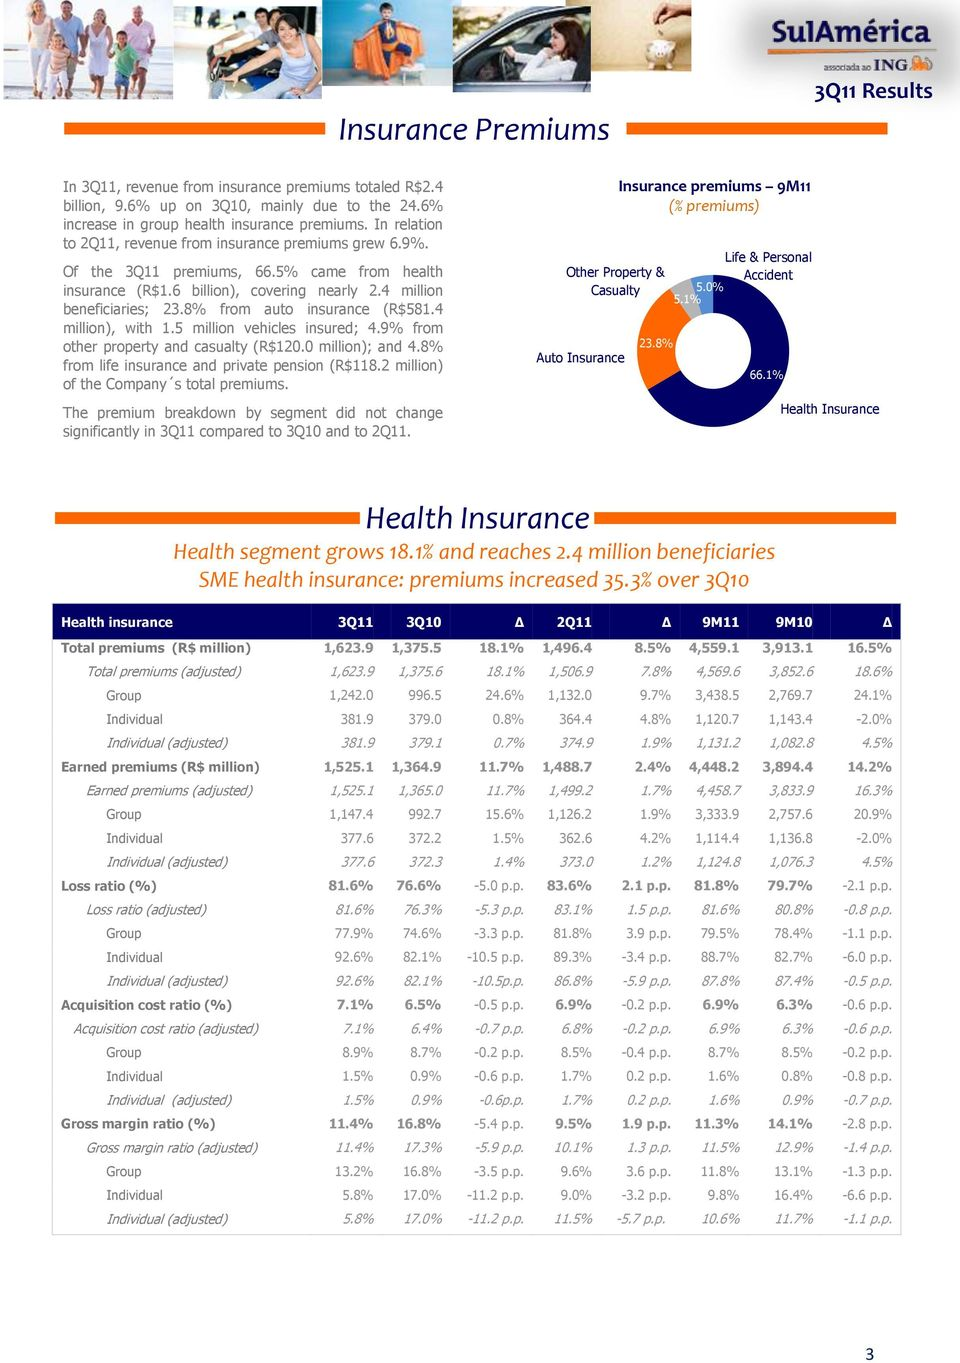 8% from auto insurance (R$581.4 million), with 1.5 million vehicles insured; 4.9% from other property and casualty (R$120.0 million); and 4.8% from life insurance and private pension (R$118.